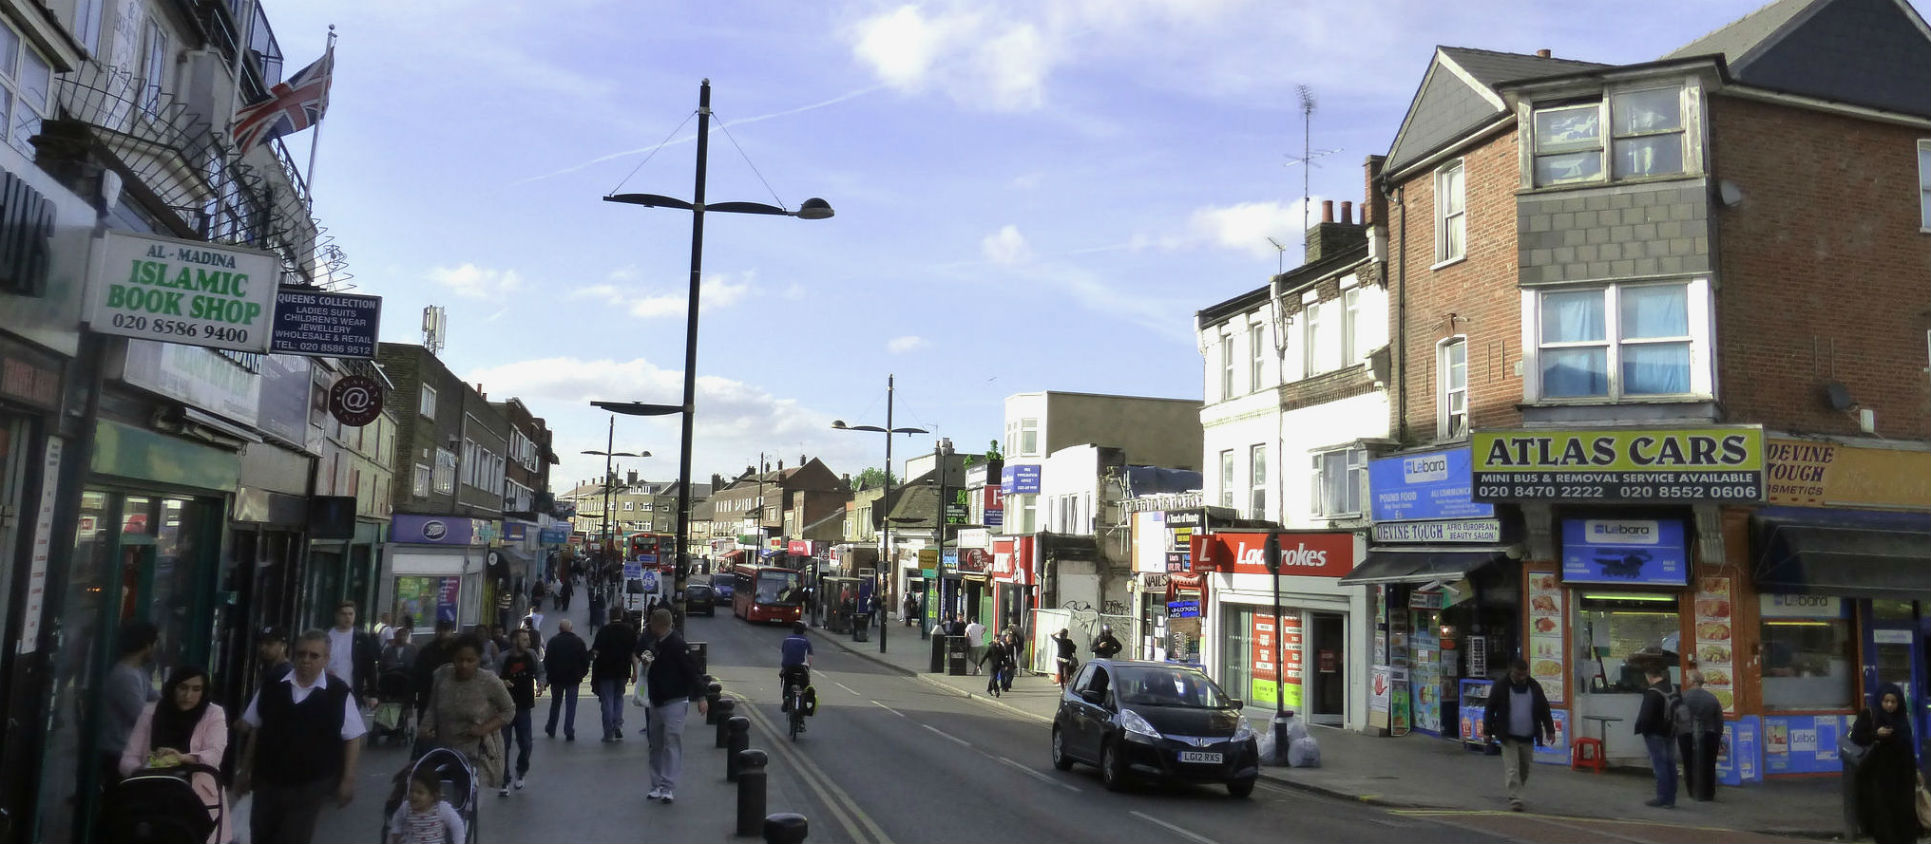 High street in Upton Park, Newham, London